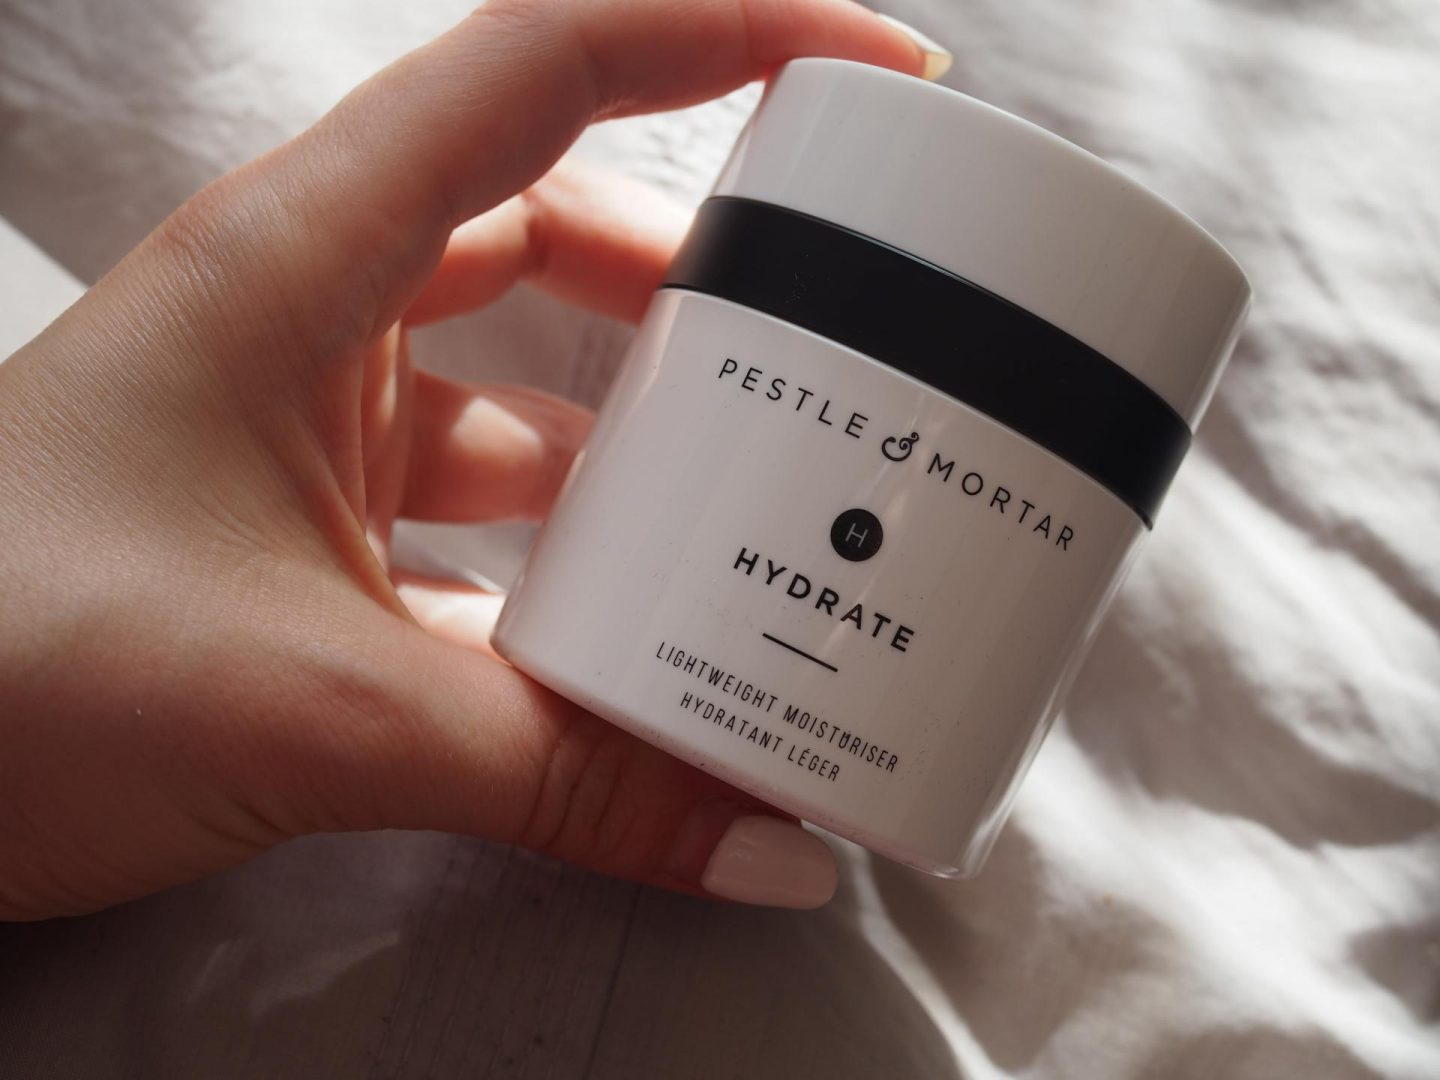 best products for dry skin - Pestle & Mortar Hydrate Lightweight Moisturiser